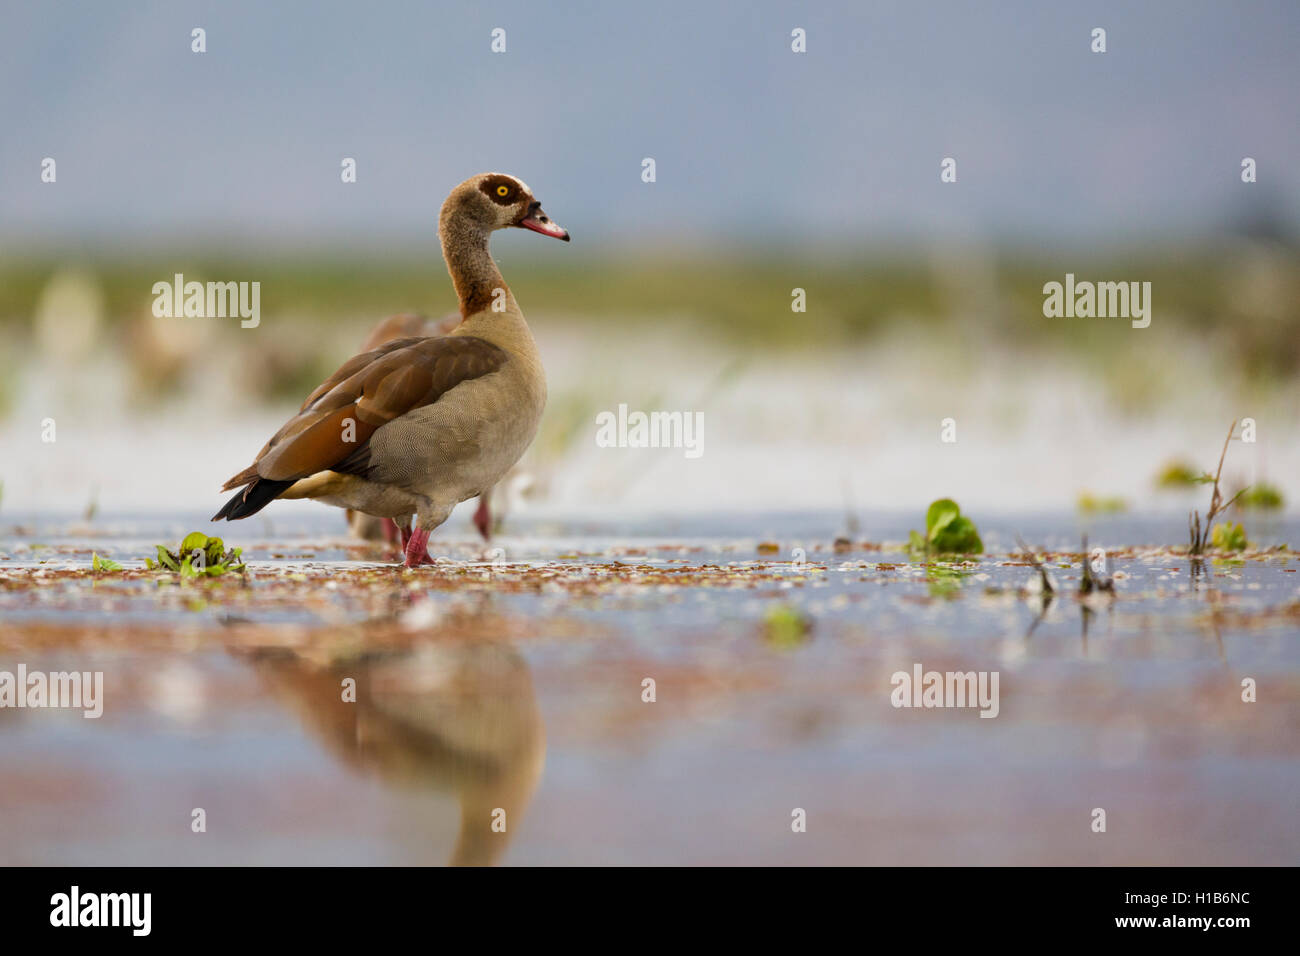 Egyptian goose (Alopochen aegyptiacus) on Lake Manyara, Tanzania - Stock Image